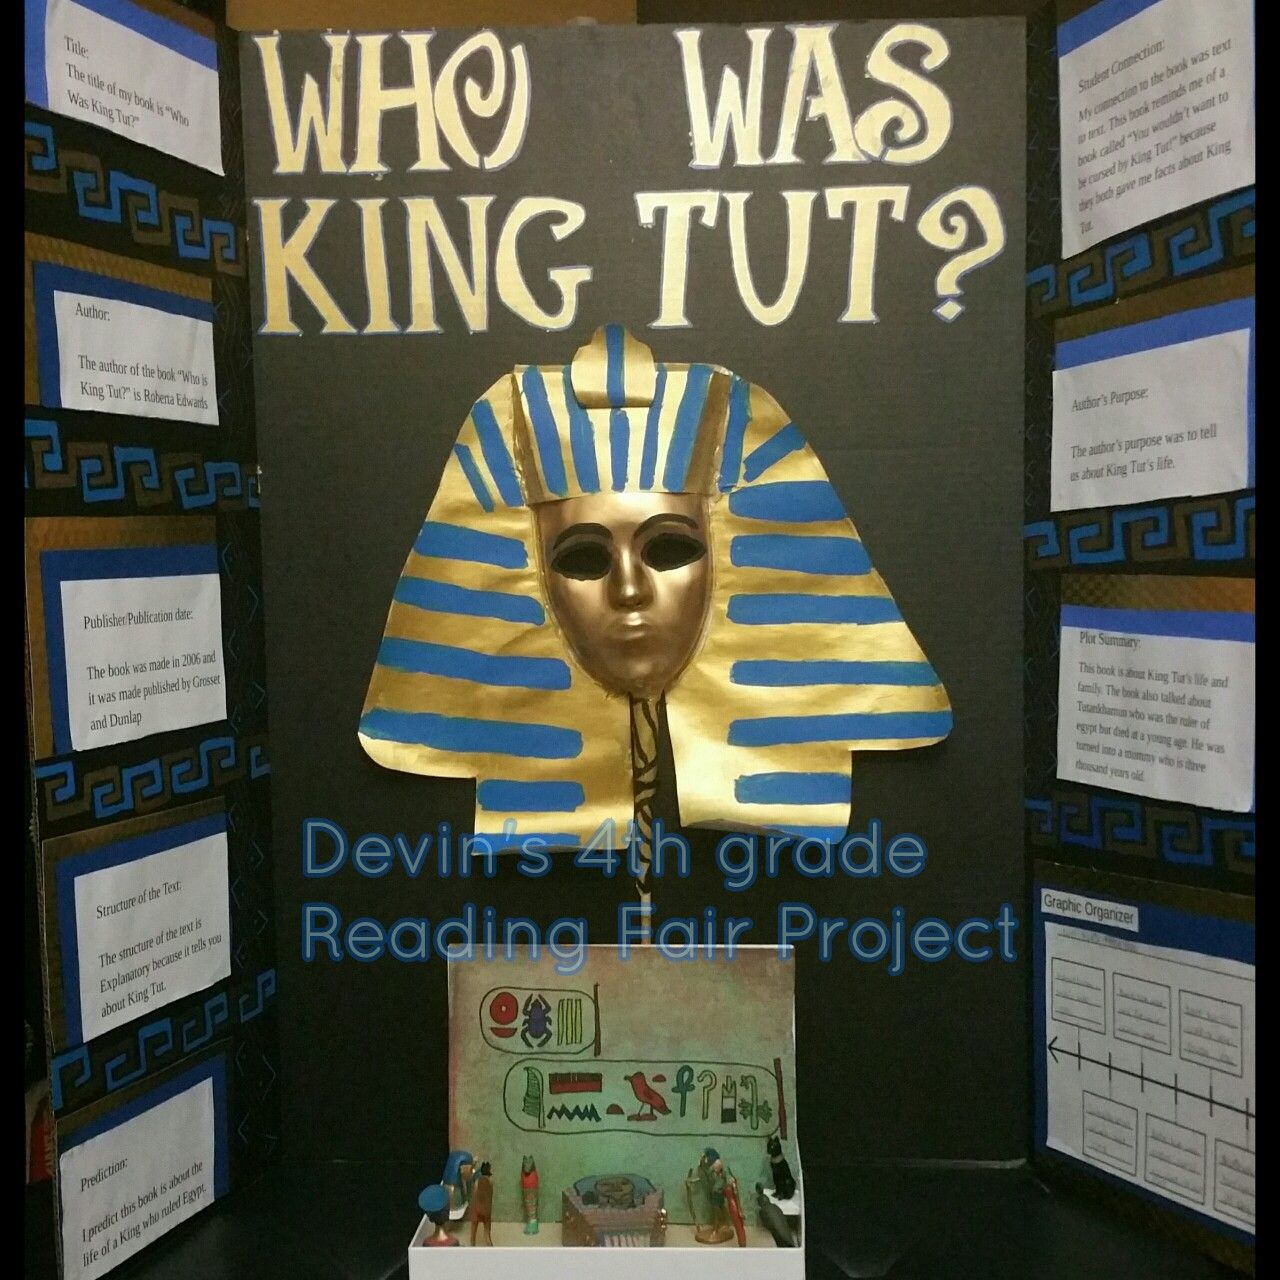 Devin S 4th Grade Reading Fair Project Book Who Was King